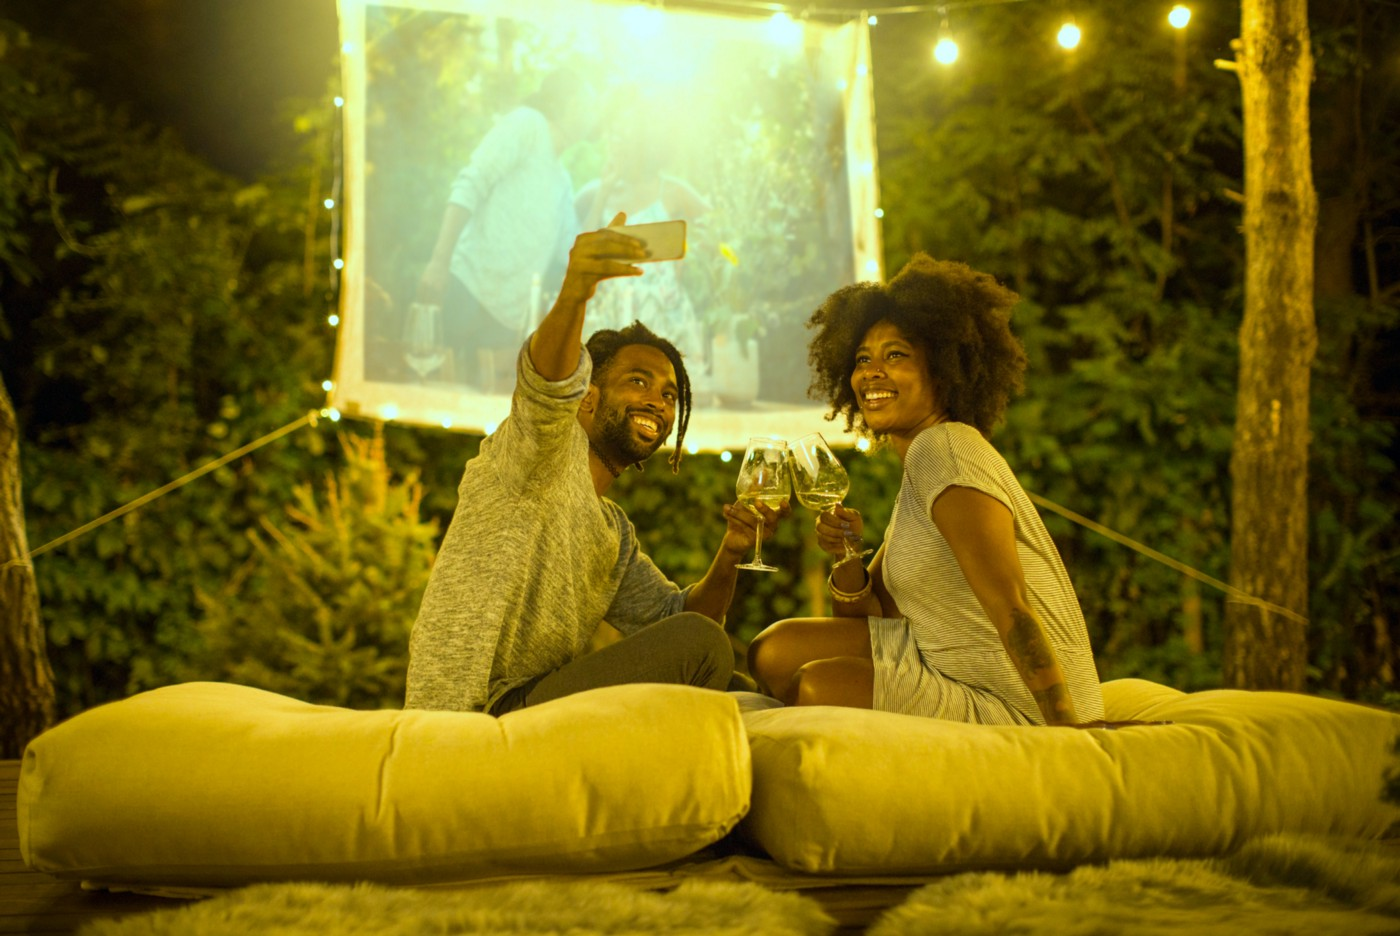 A Black couple take a selfie in their backyard, where they've set up a projector screen to watch a movie with hanging lights.